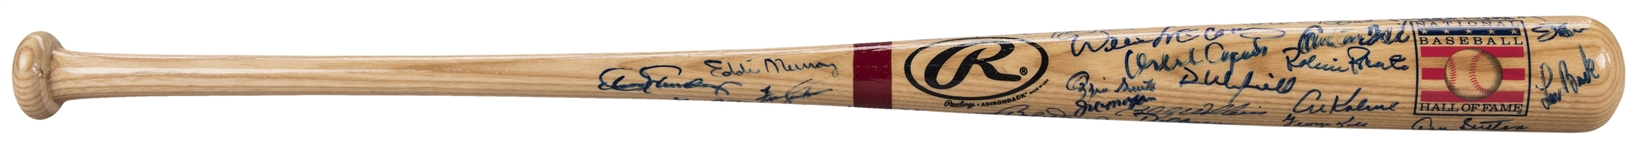 Hall of Famers Multi Signed 2004 National Baseball Hall of Fame Bat With Over 40+Signatures (Doerr Family LOA & JSA)